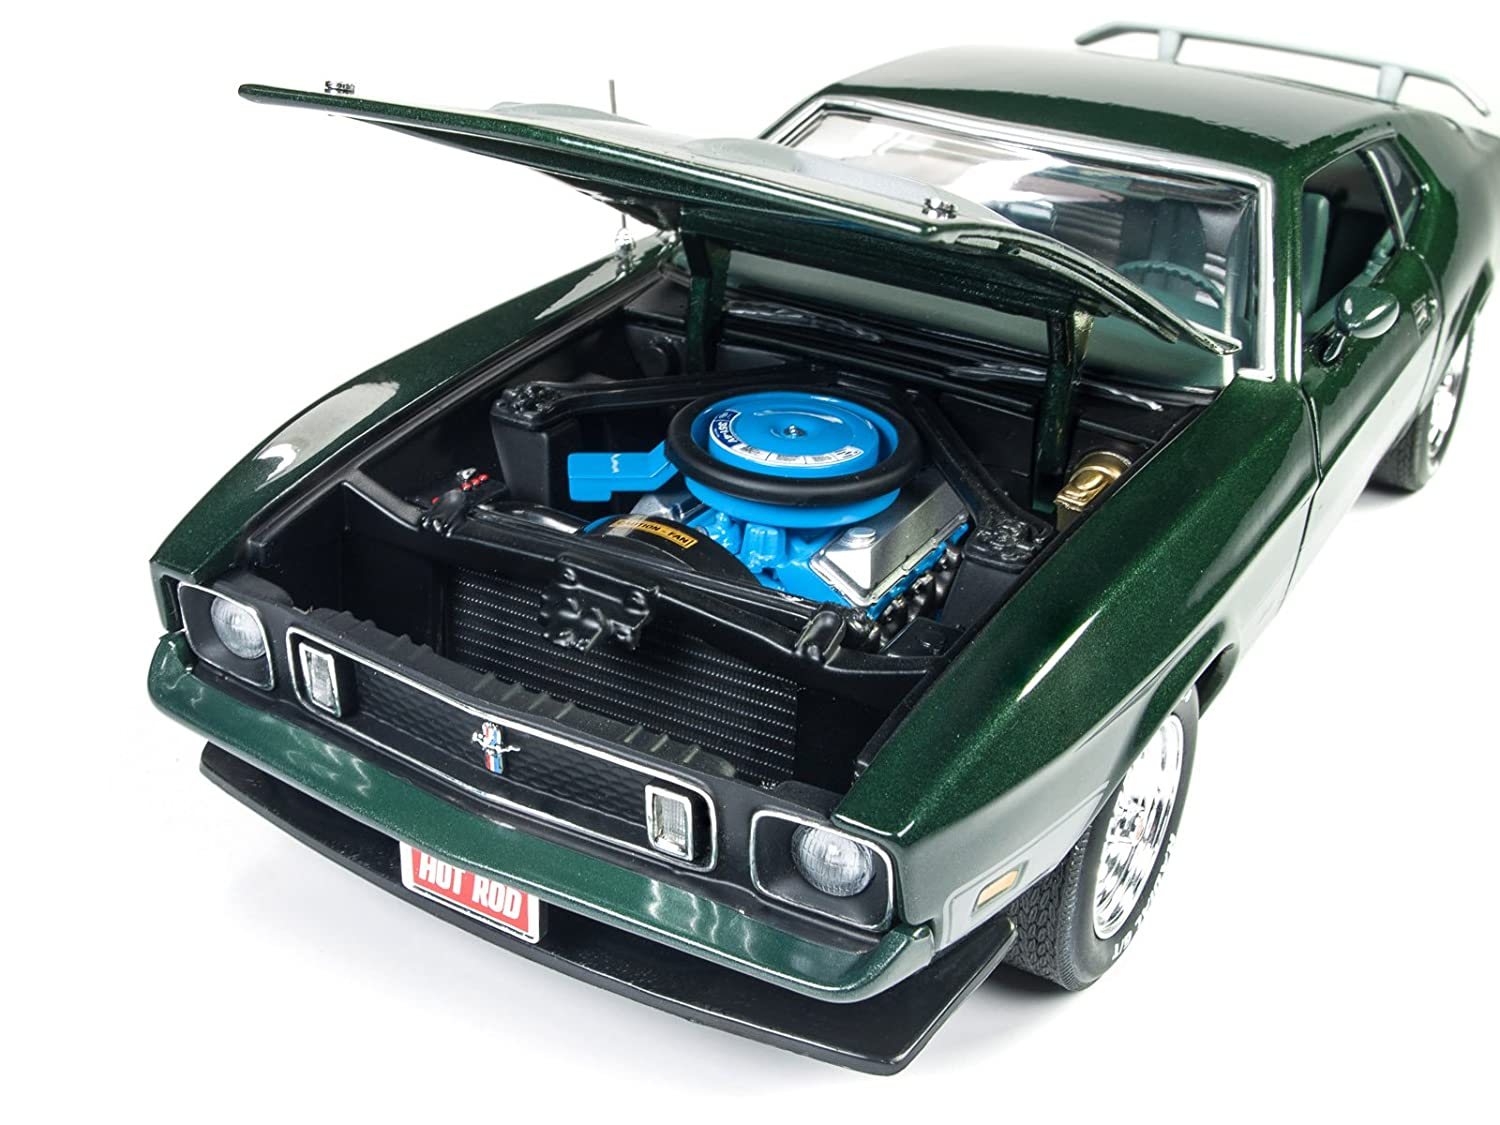 Amazon com 1973 ford mustang mach 1 dark green with silver stripes from hot rod magazine limited edition to 1002 pieces 1 18 diecast model car by